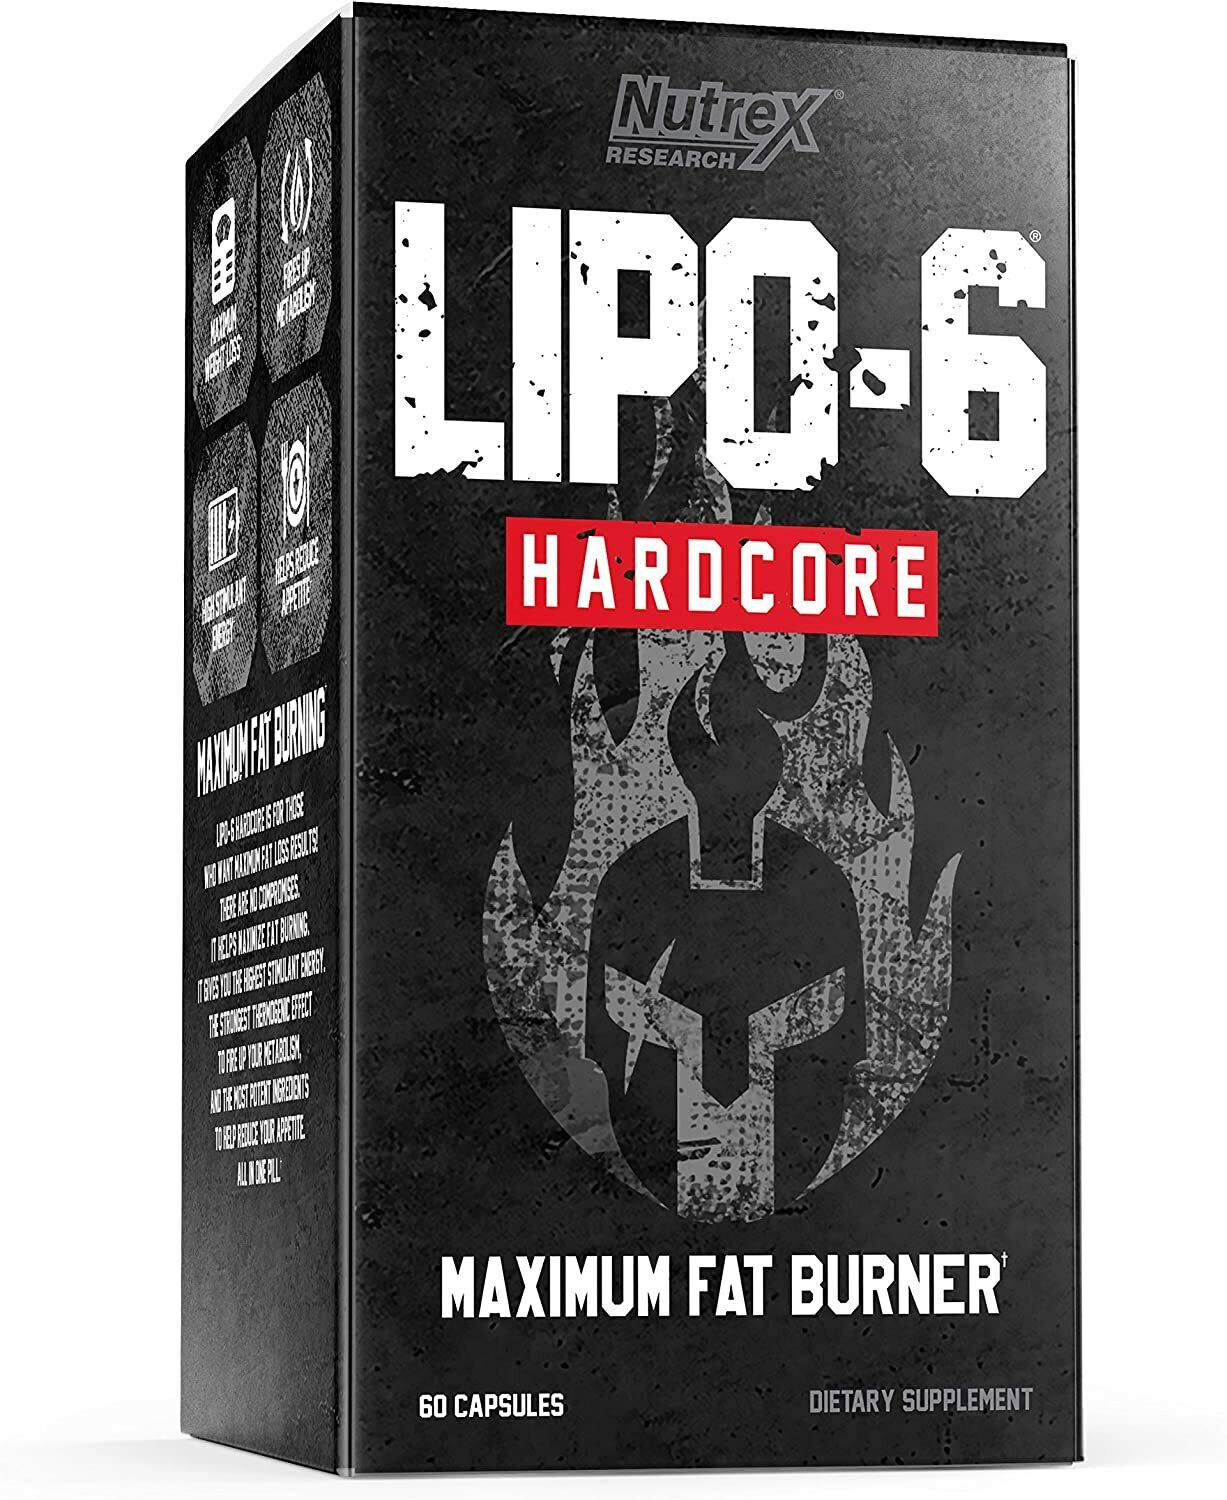 Nutrex Research Lipo 6 Black Hers Ultraconcentrate 60 Caps.